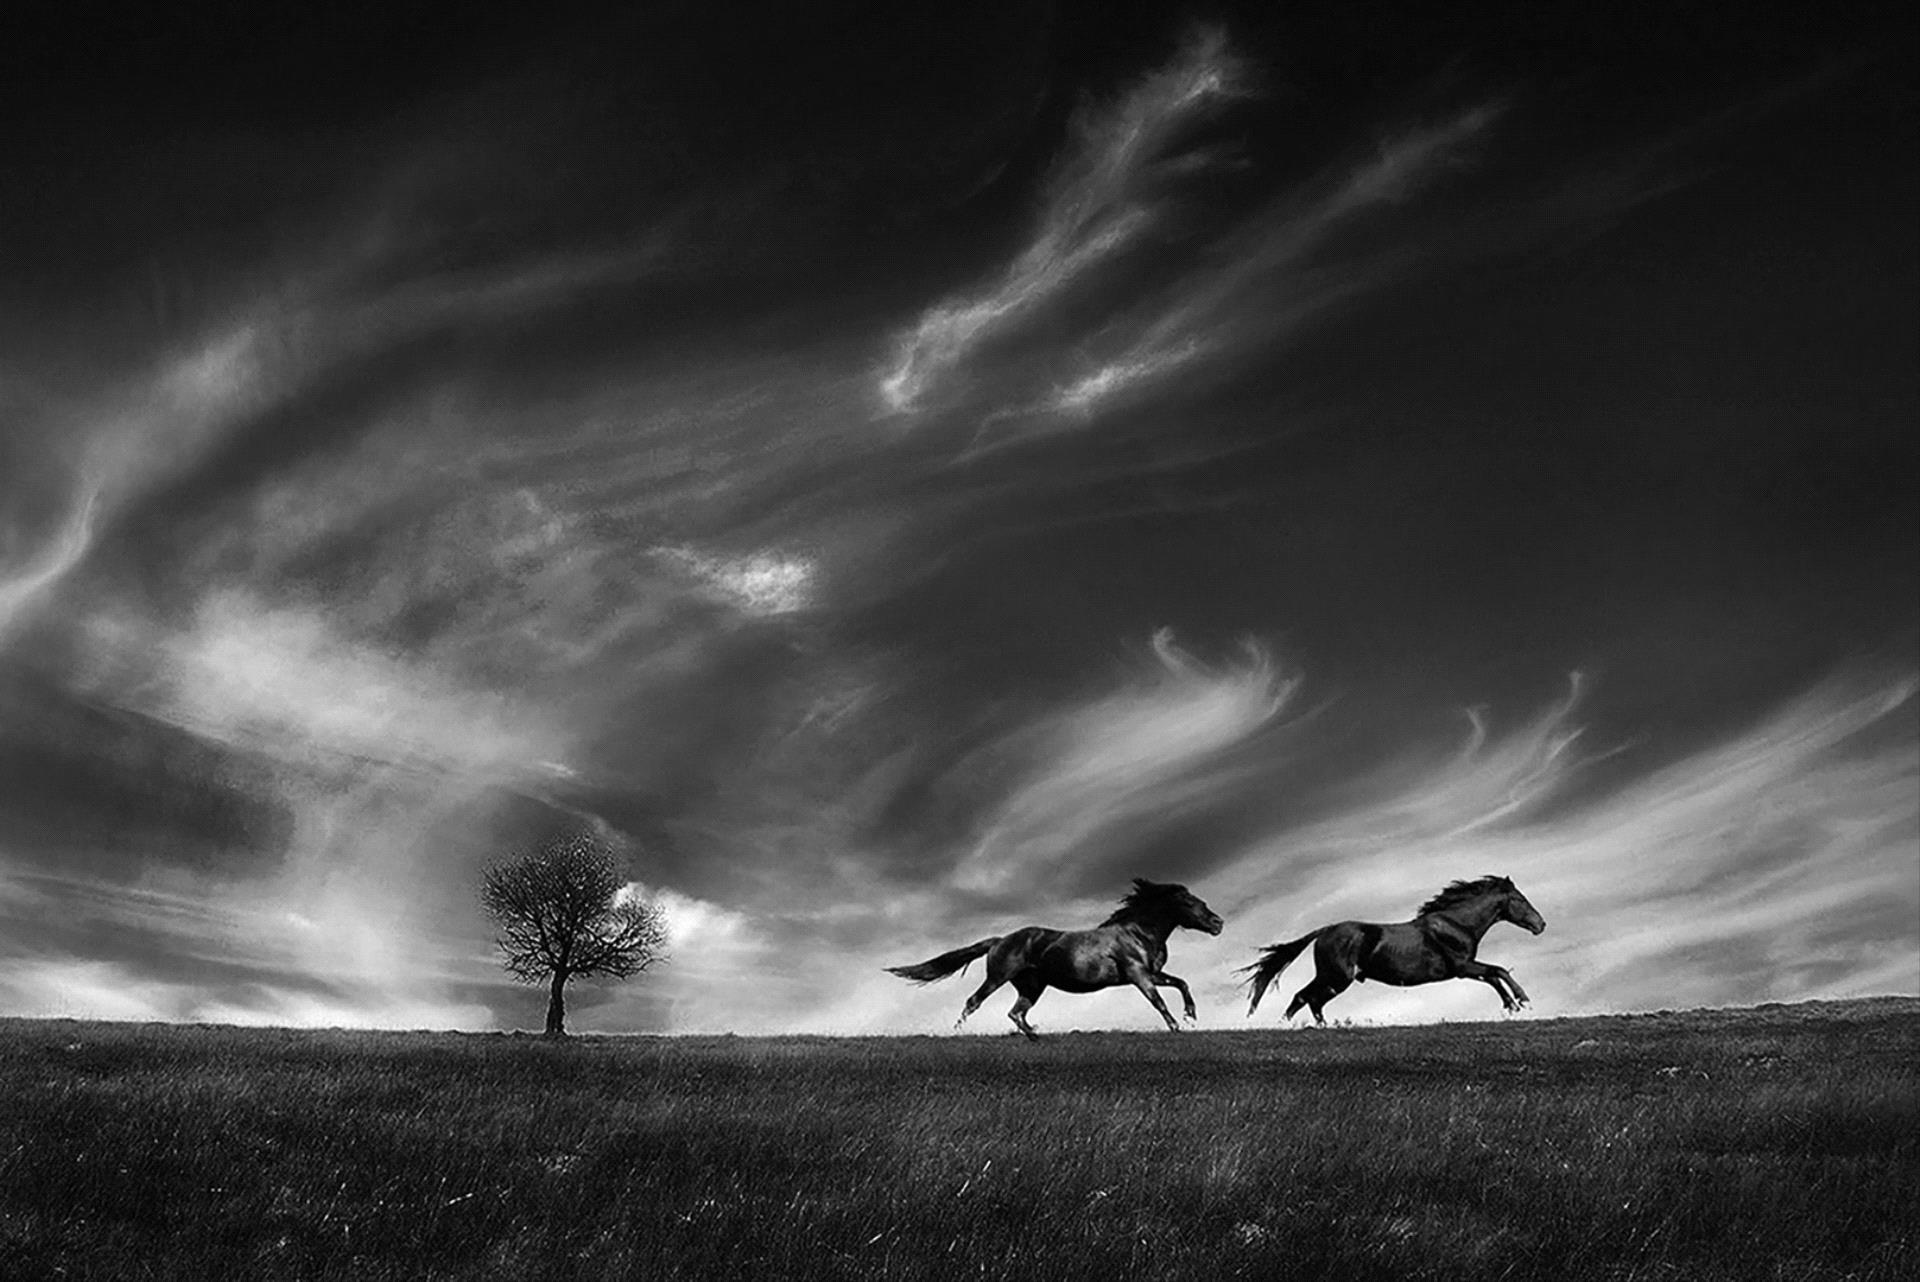 Golden Dragon Photo Award - Lajos Nagy (Romania) - Running With The Wind